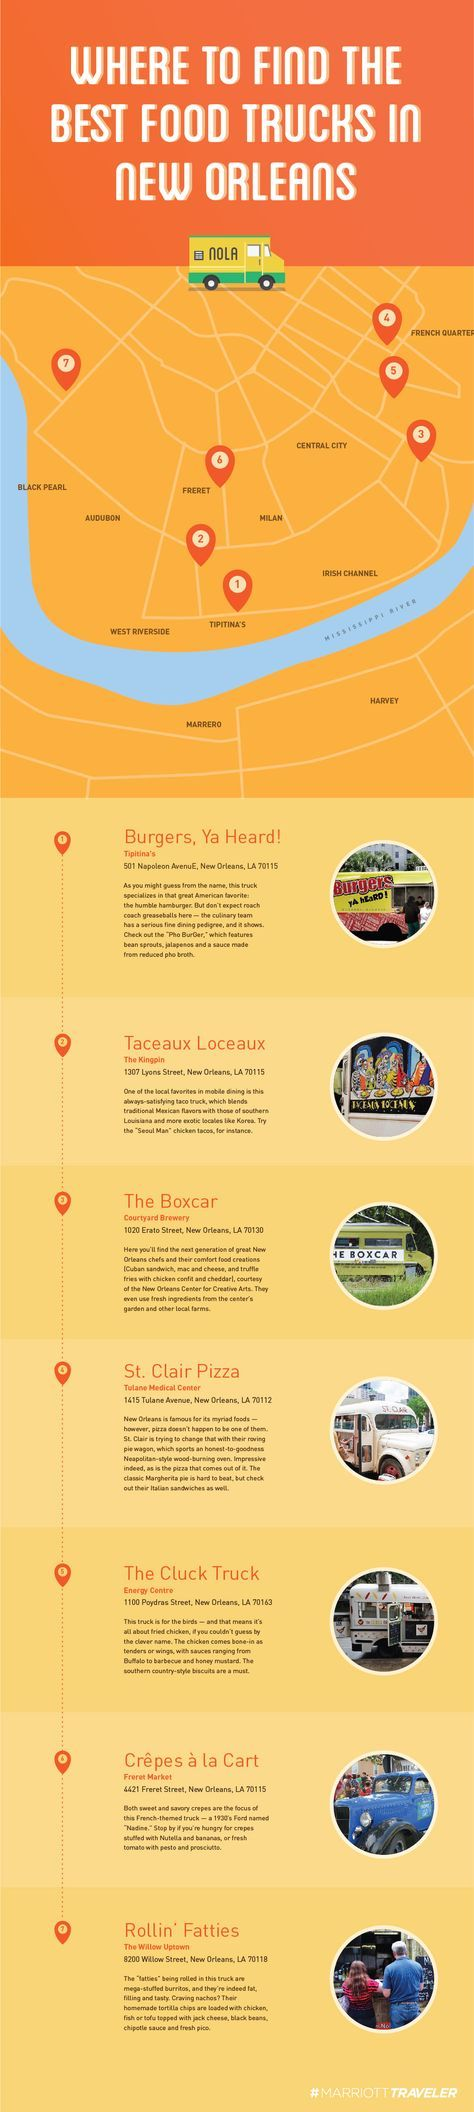 The Best Food Trucks in New Orleans Infographic. #NewOrleans #Infographic #FoodT…